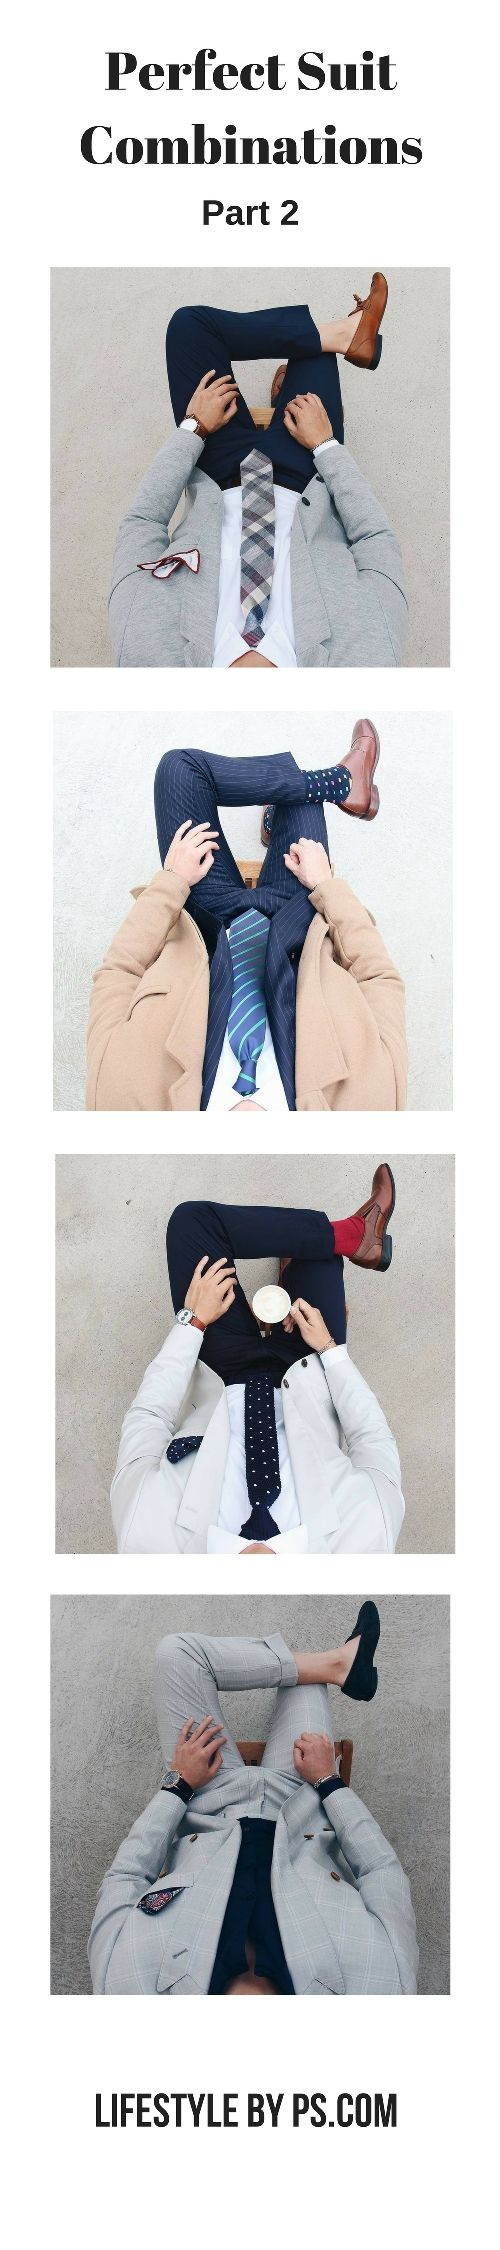 Perfect Suit Combinations For Men  #mens #fashion #style